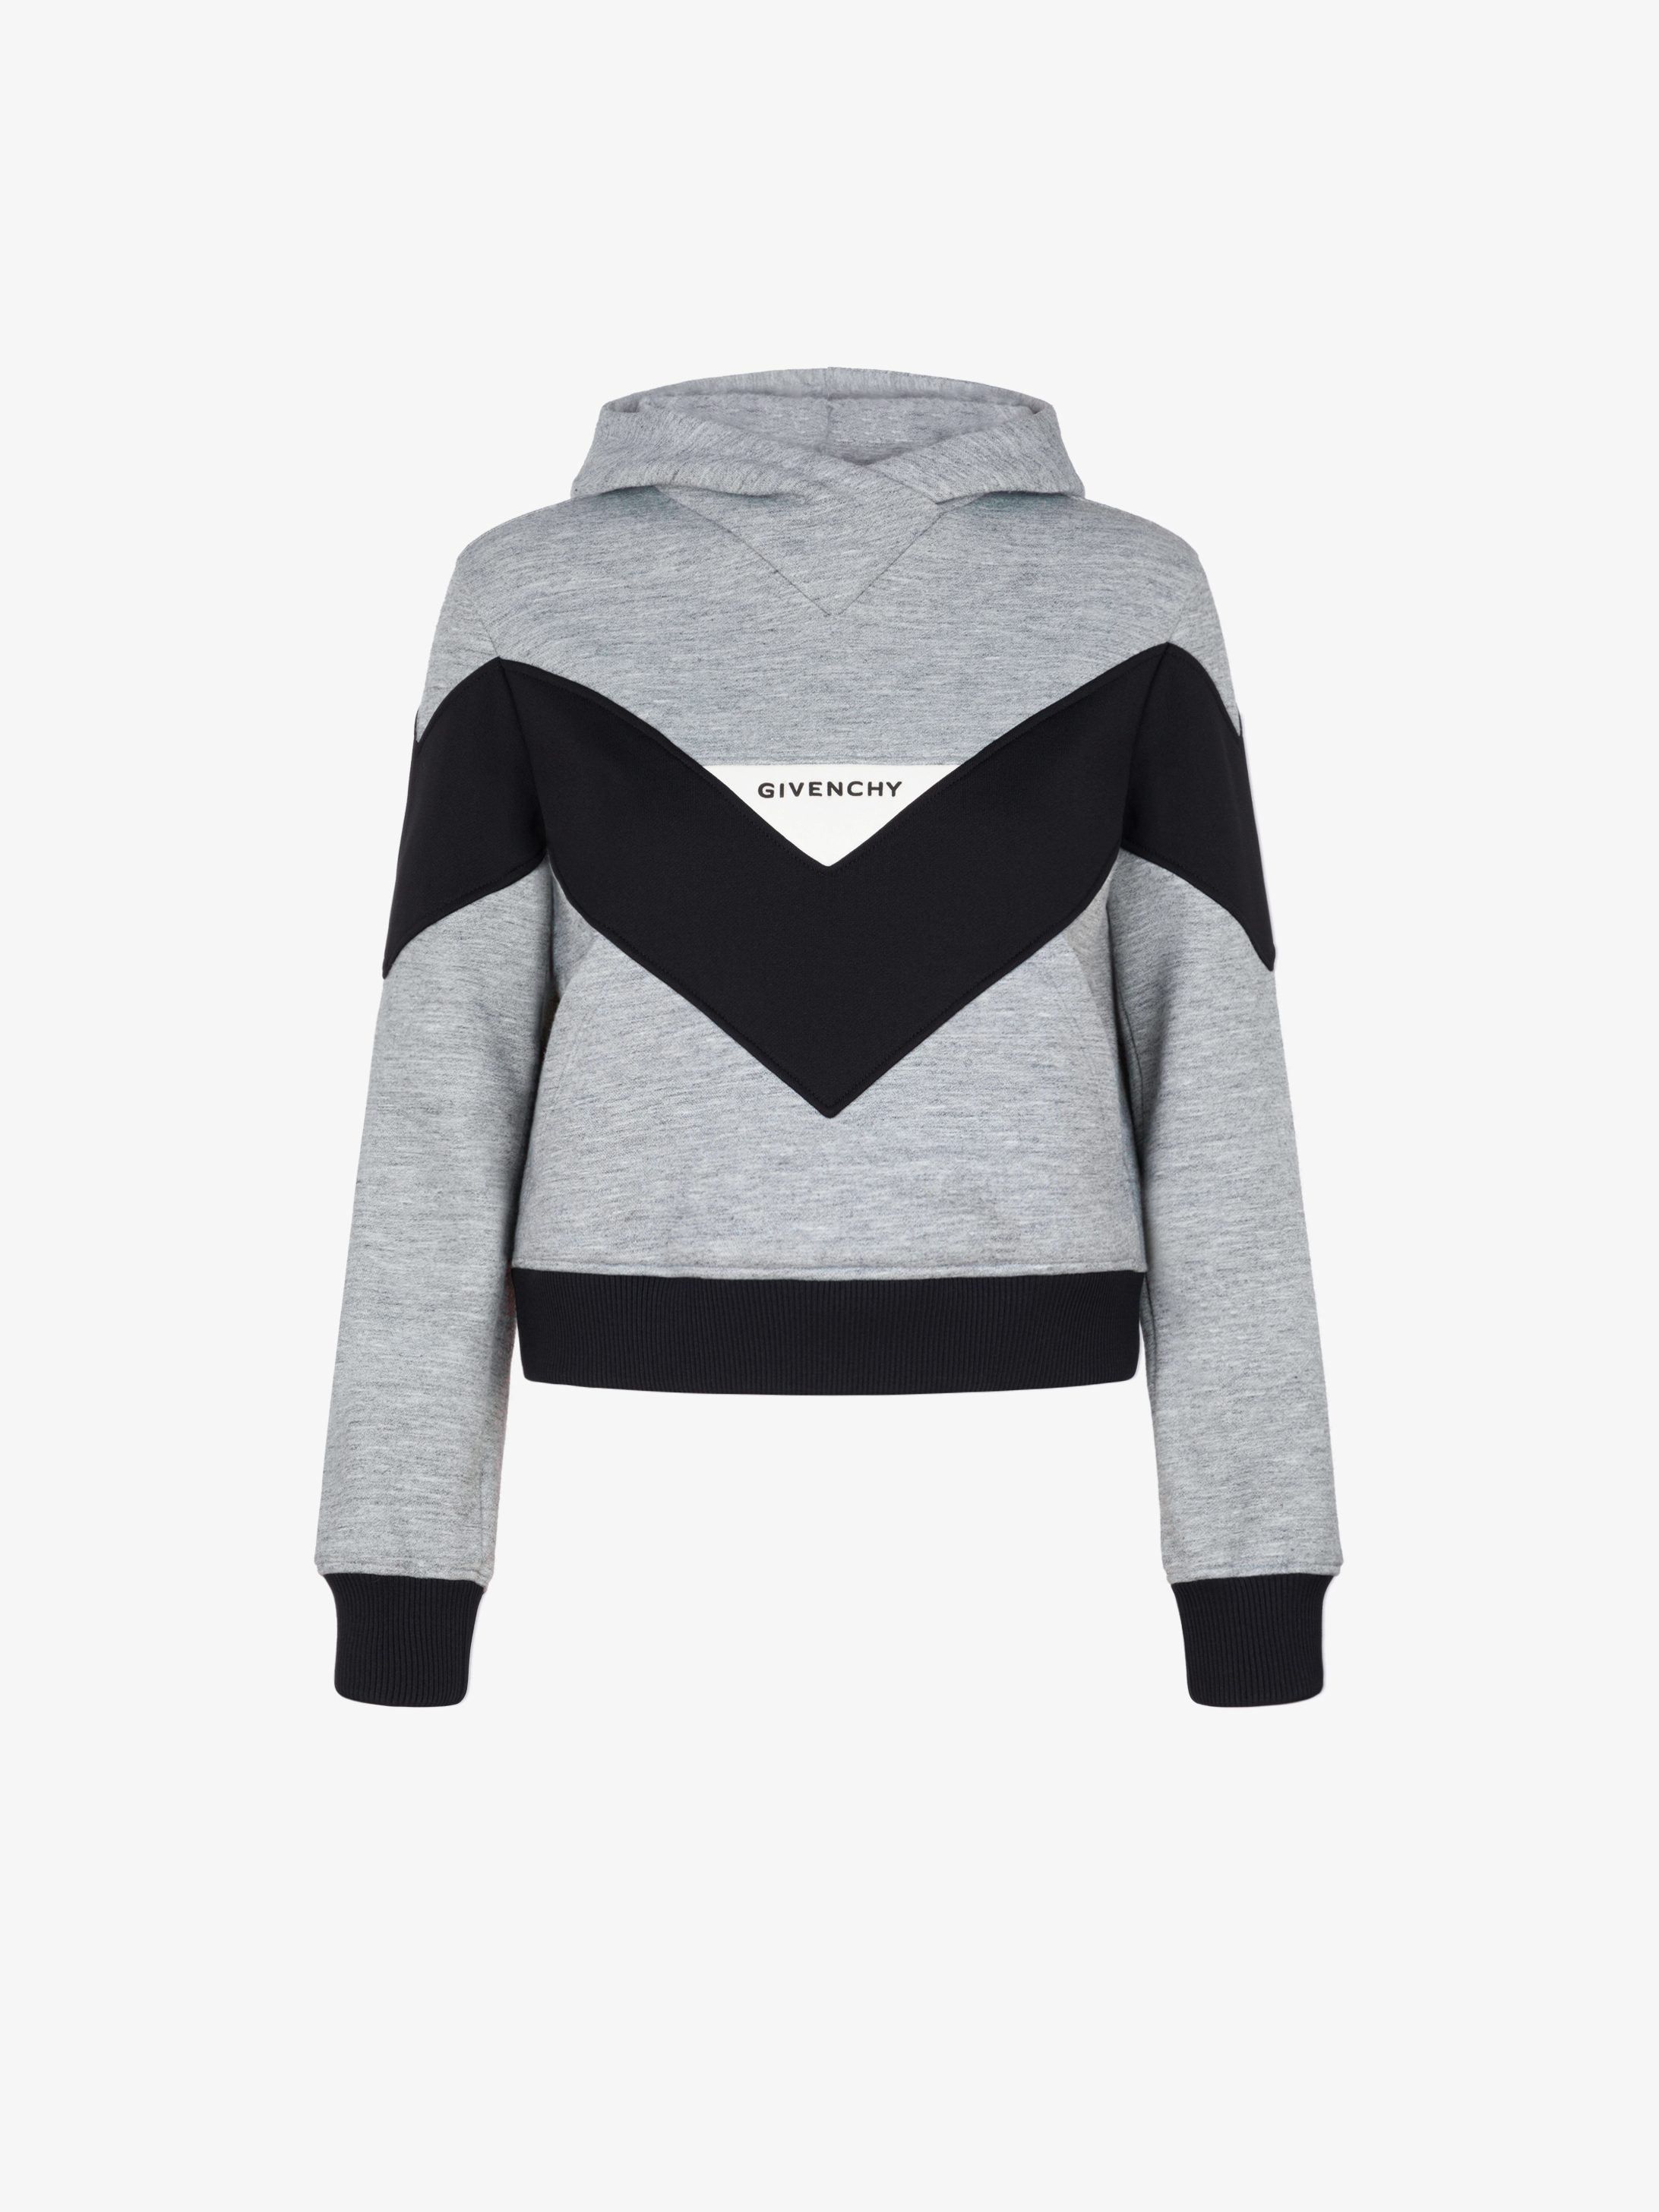 GIVENCHY sweatshirt with contrasting chevron band